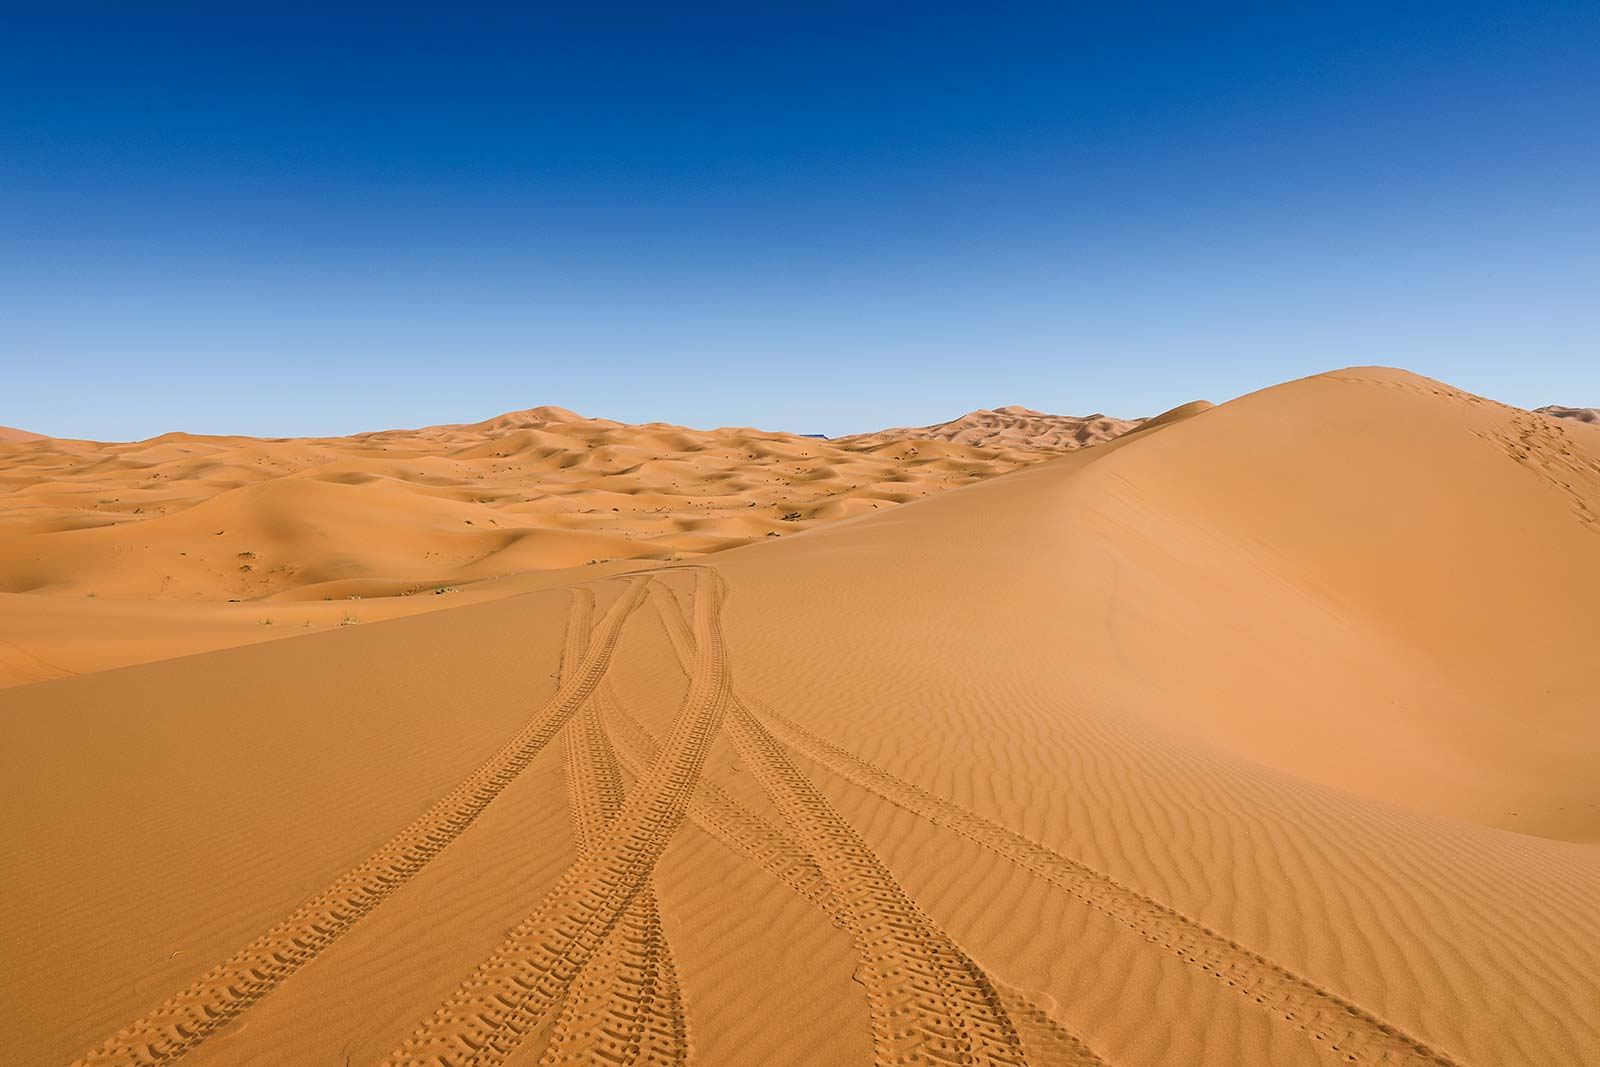 The dunes of Erg Chebbi reach a height of up to 150 meters in places and altogether it spans an area of 50 kilometers from north to south and up to 5–10 kilometers from east to west.